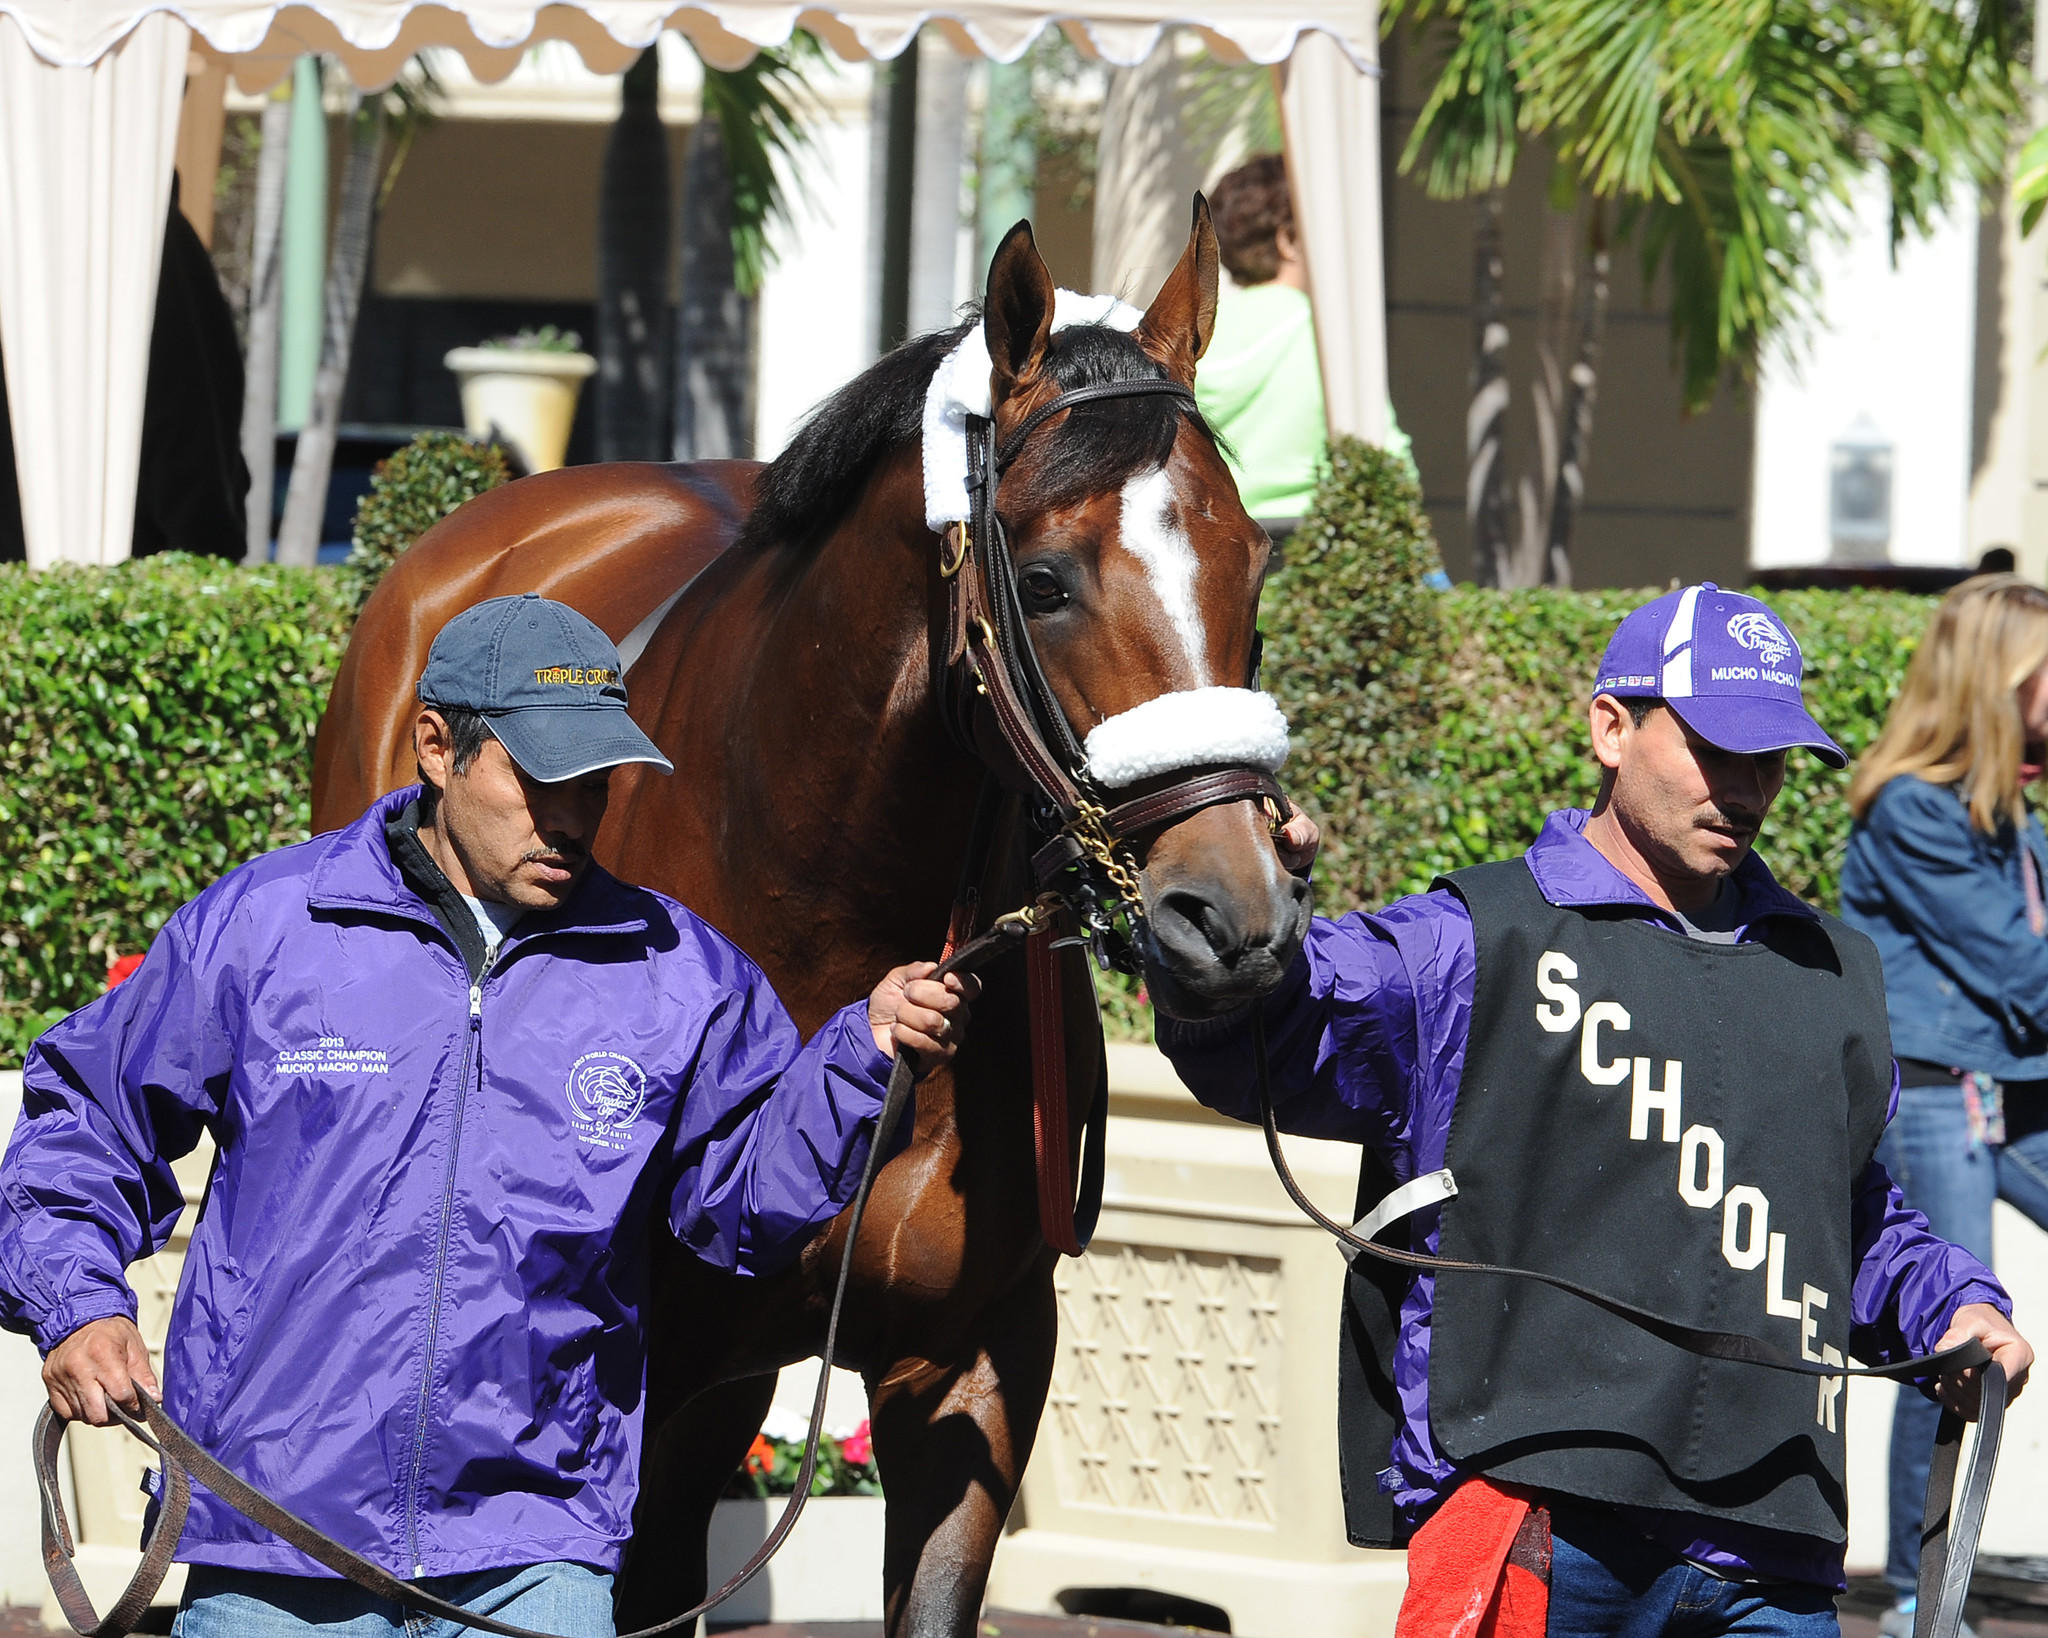 Mucho Macho Man schools Thursday at Gulfstream Park in preparation for racing Saturday in the Sunshine Millions Classic. The horse, trained by Kathy Ritvo, is nominated for two Eclipse Awards which will be presented at night. Handout photo provided by: Coglianese Photo